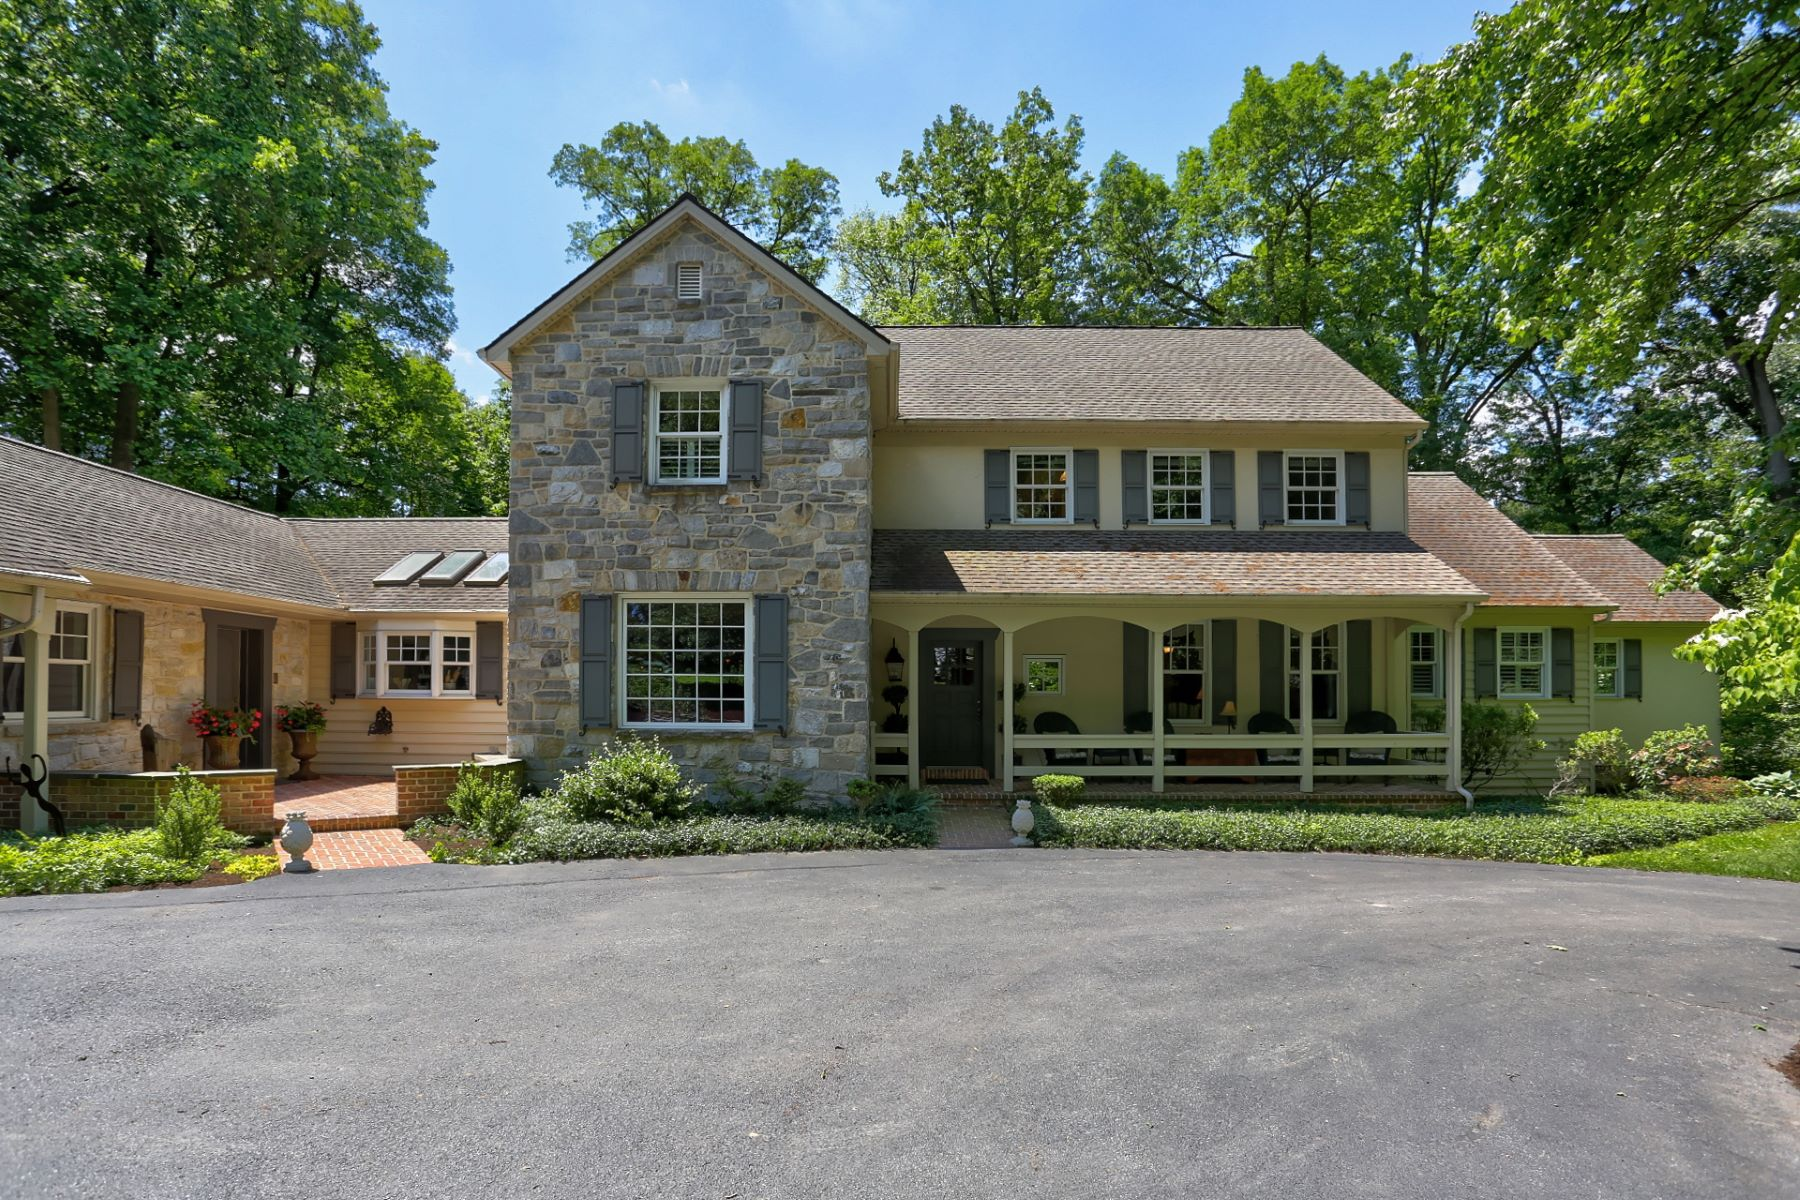 Single Family Home for Sale at 23 Warwick Road Lititz, Pennsylvania 17543 United States